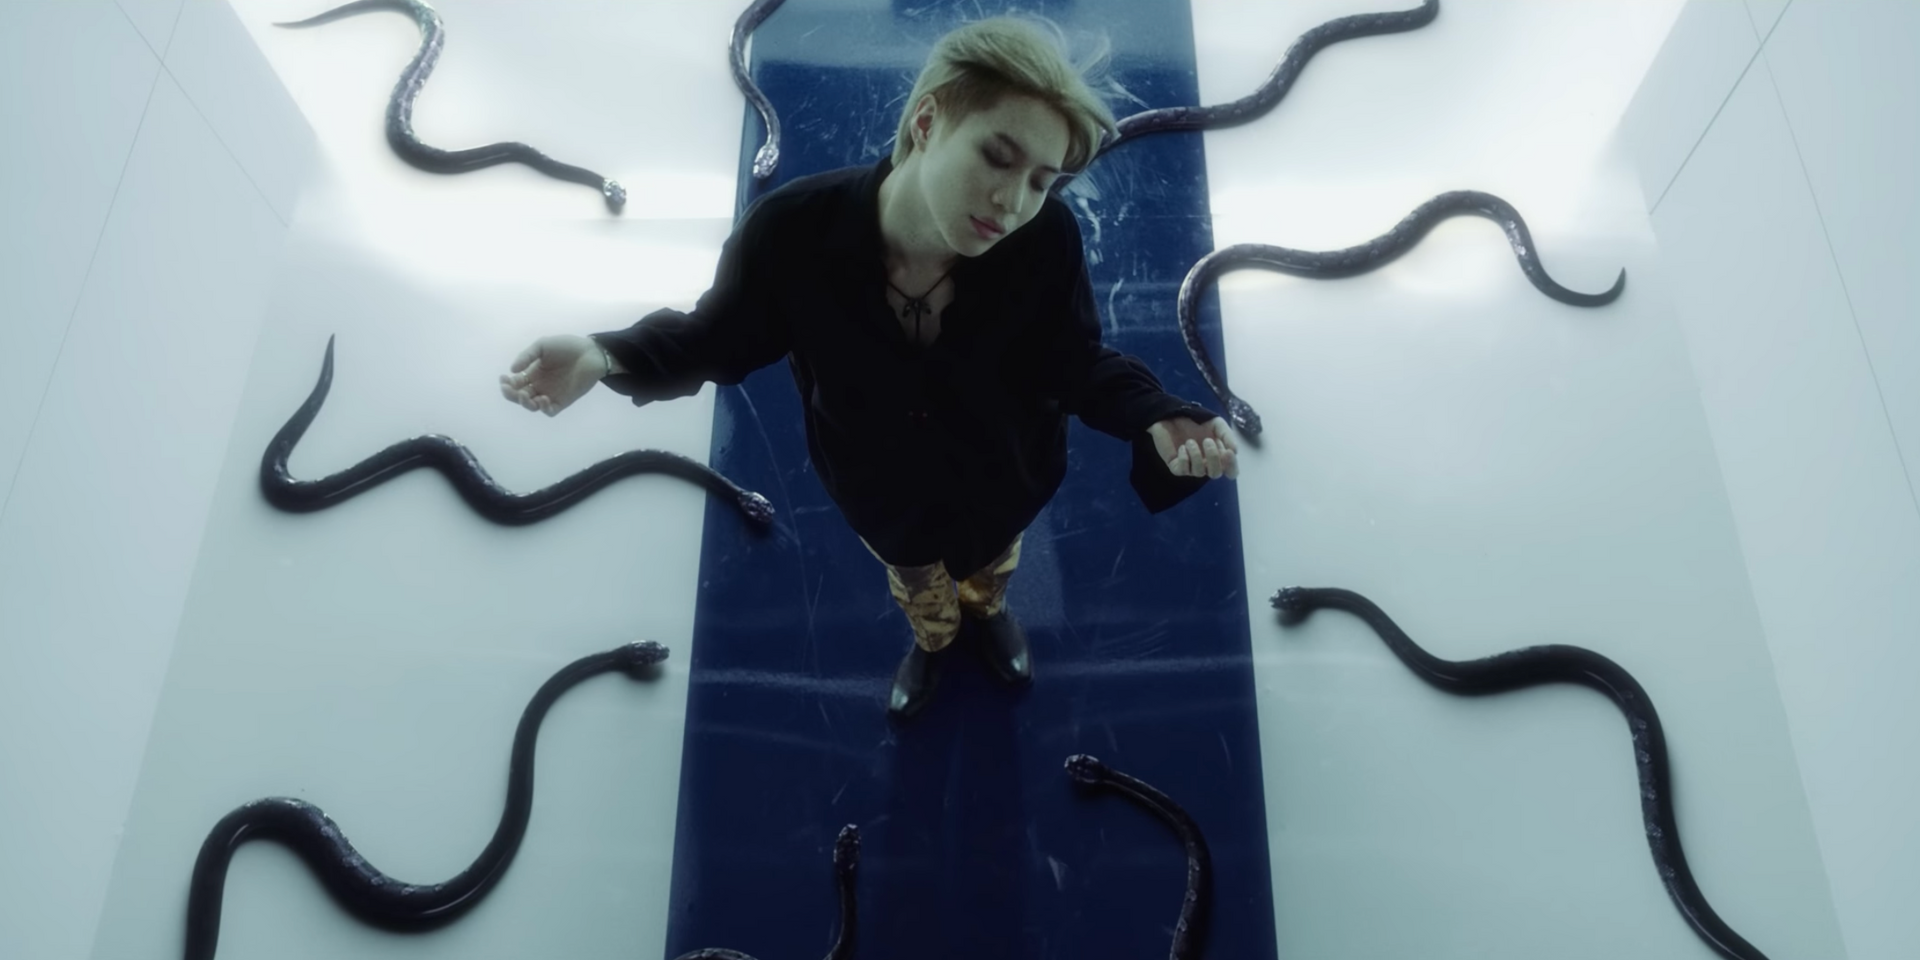 SHINee's Taemin releases visually stunning music video for new song 'WANT'